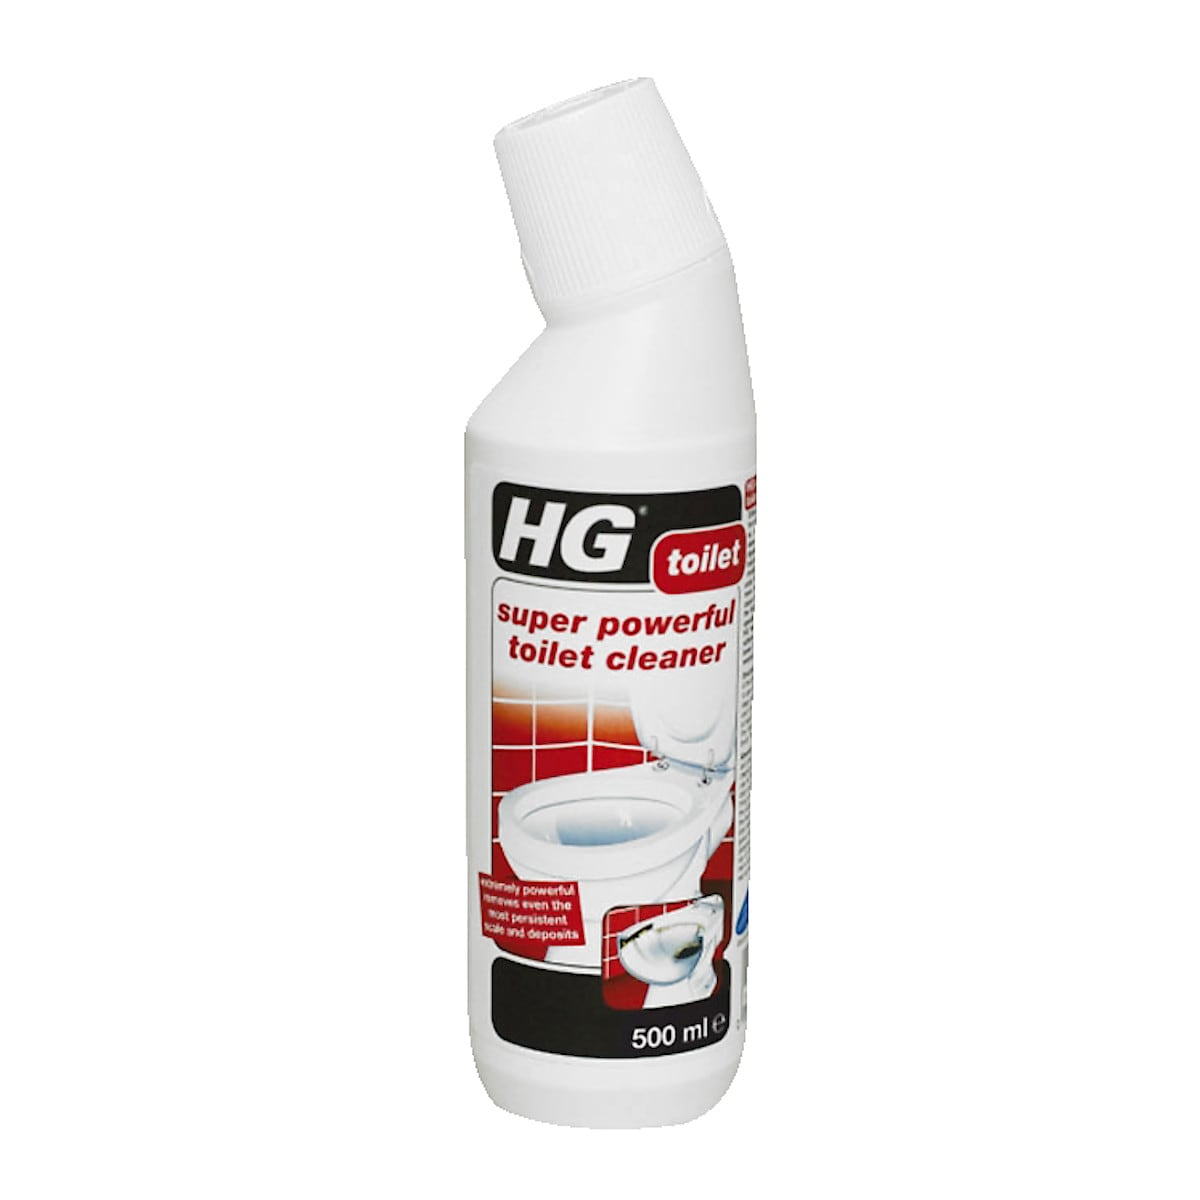 HG powerful toilet cleaner